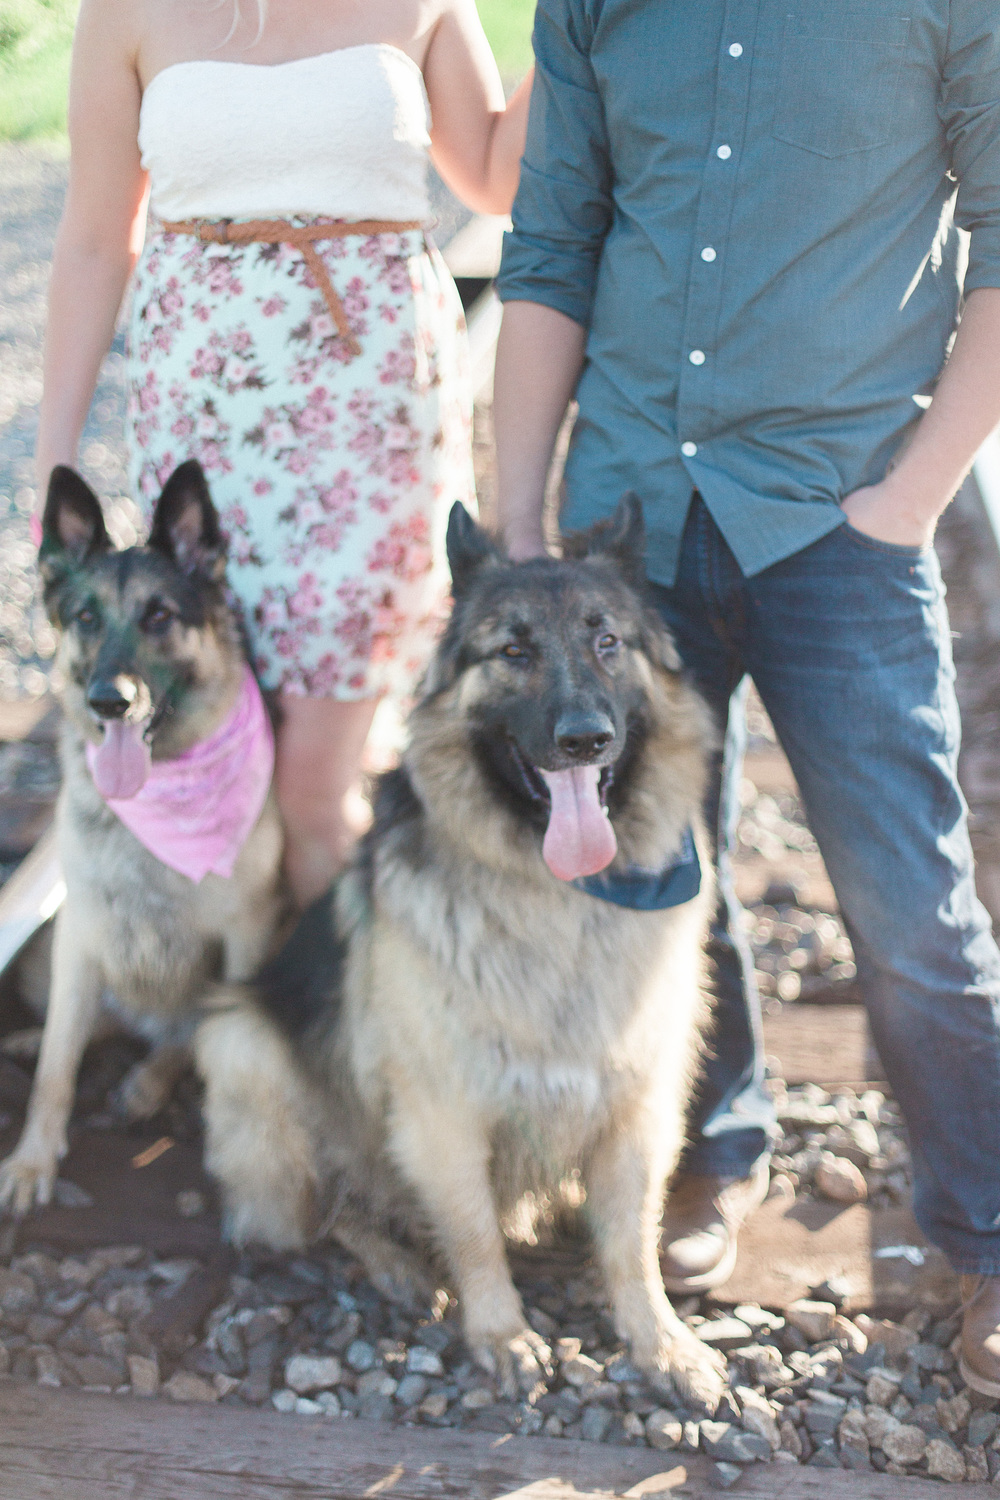 Country Backyard Engagement Session | Engagement Session with pet | Winnipeg Wedding Photographer | Keila Marie Photography